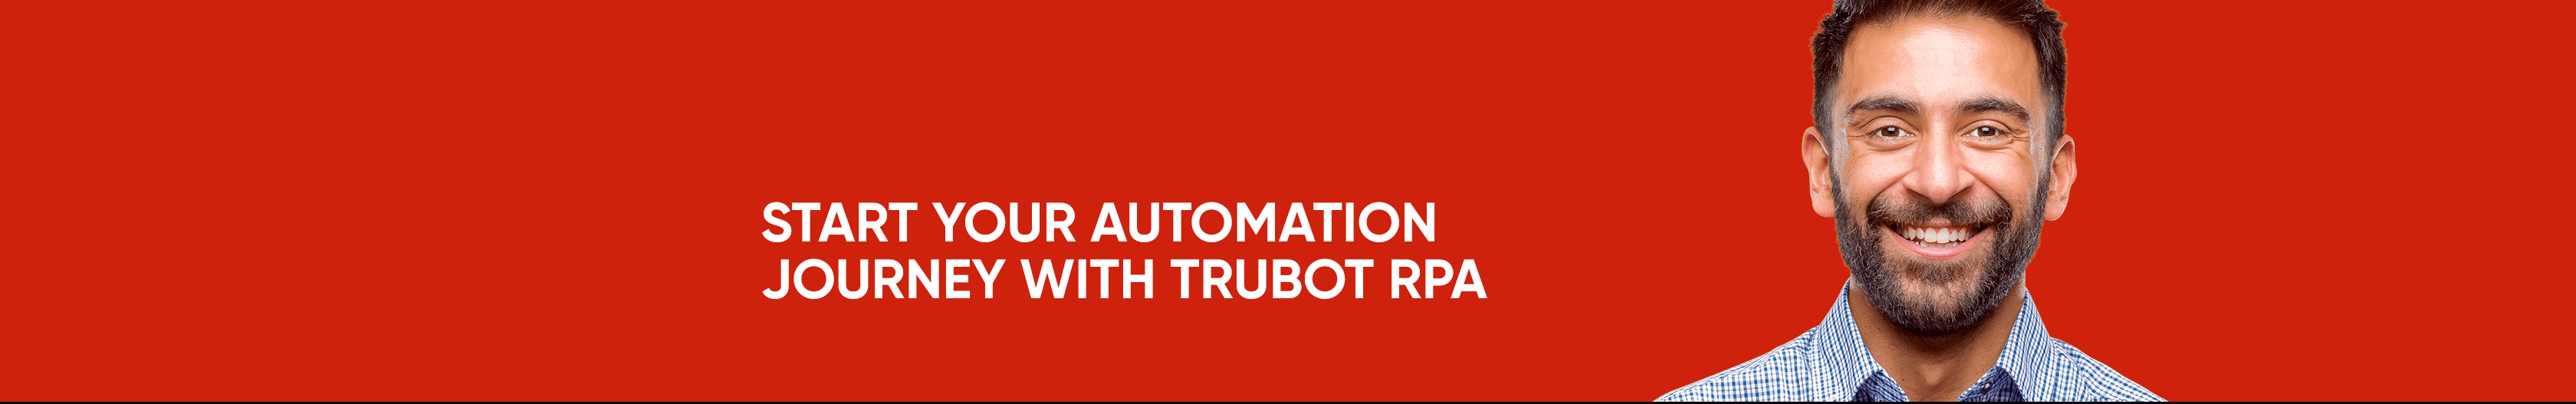 Start-your-automation-journey-with-TruBot-RPA